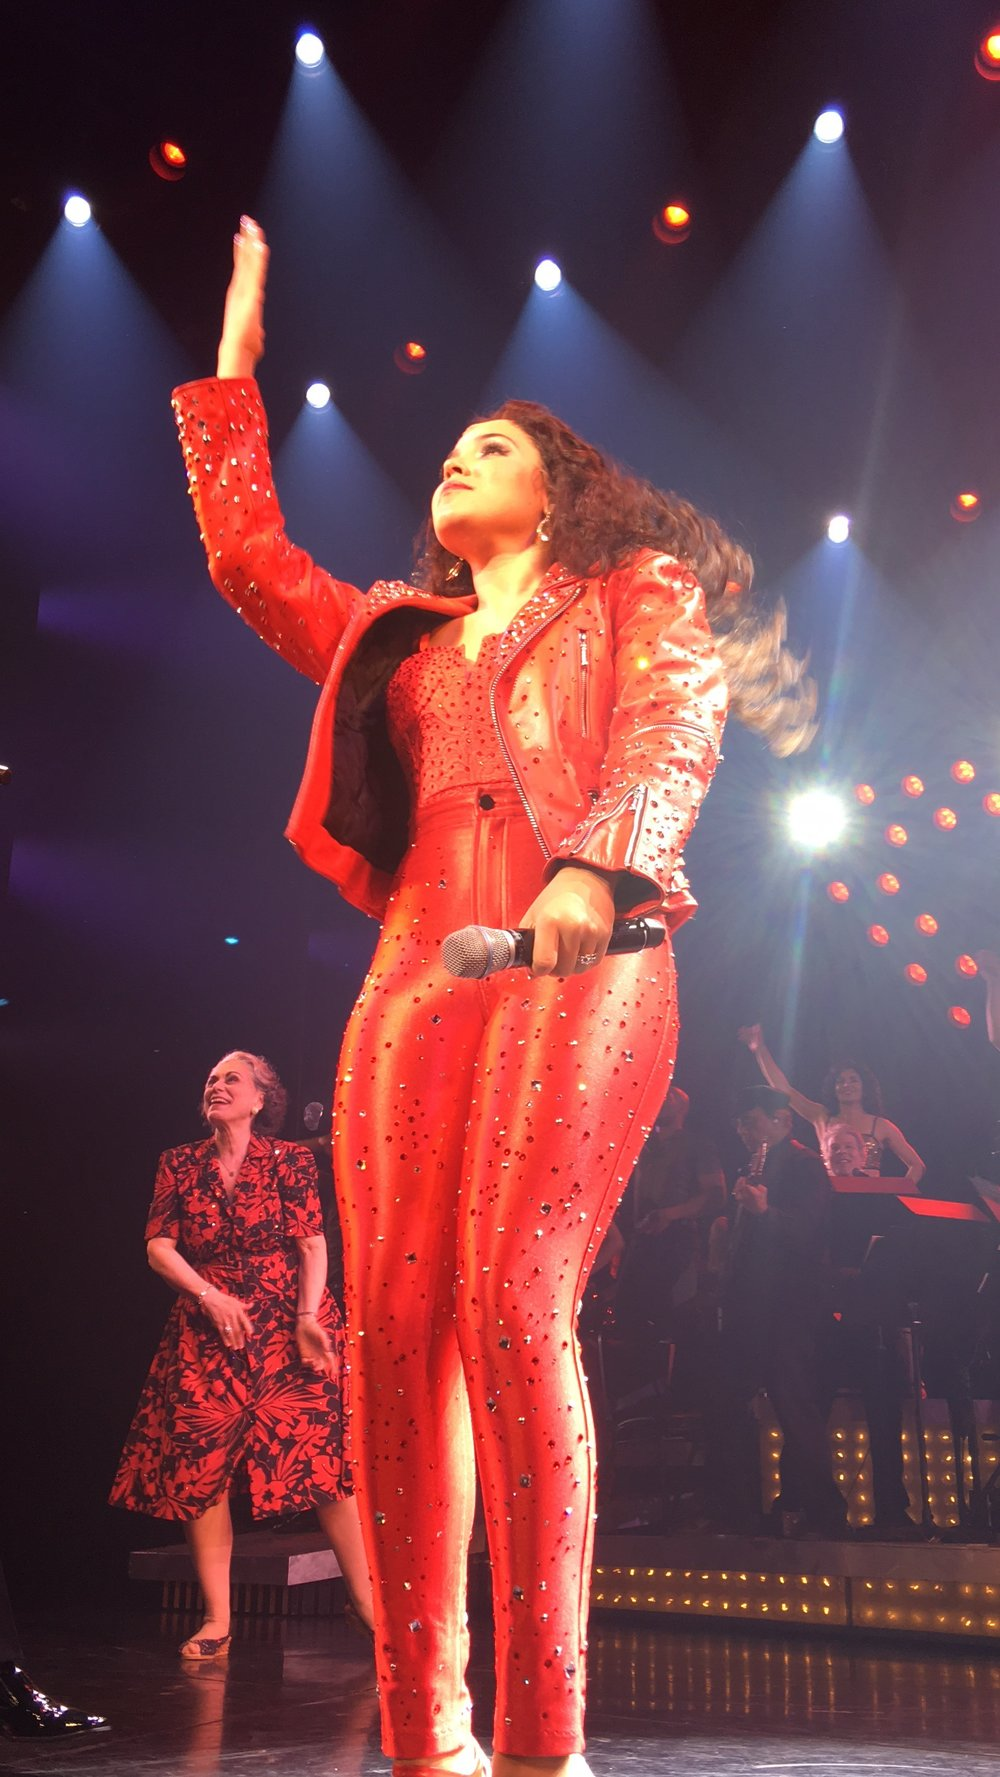 Linedy Genao as Gloria Estefan in  On Your Feet!